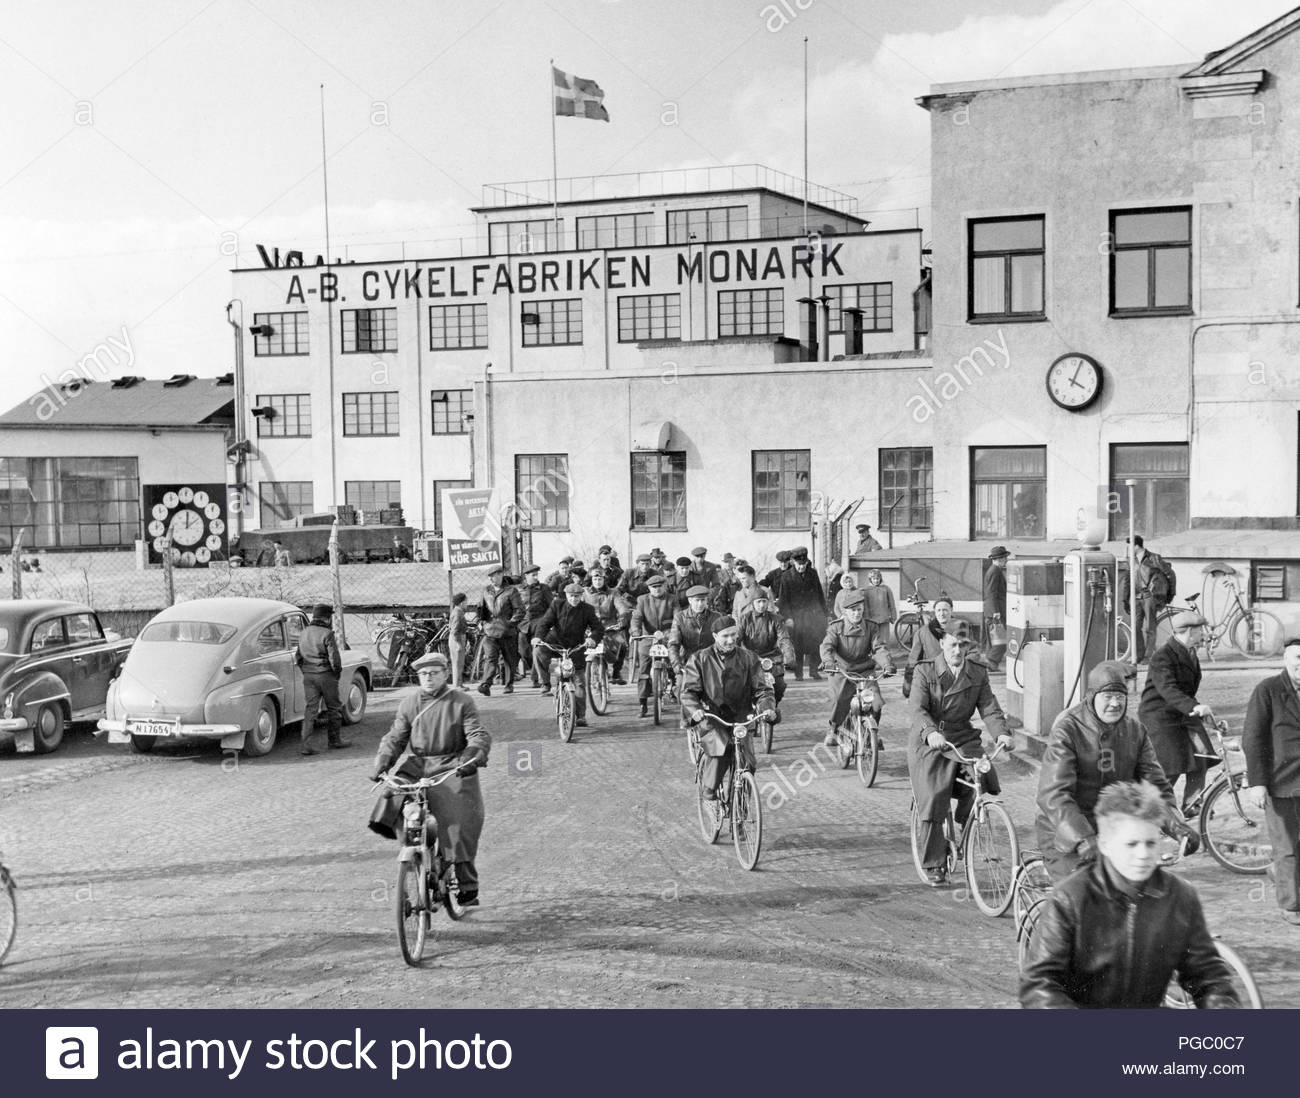 factory-in-the-1950s-work-is-over-for-the-day-at-the-bicycle-and-motorcycle-company-monark-in-...jpg